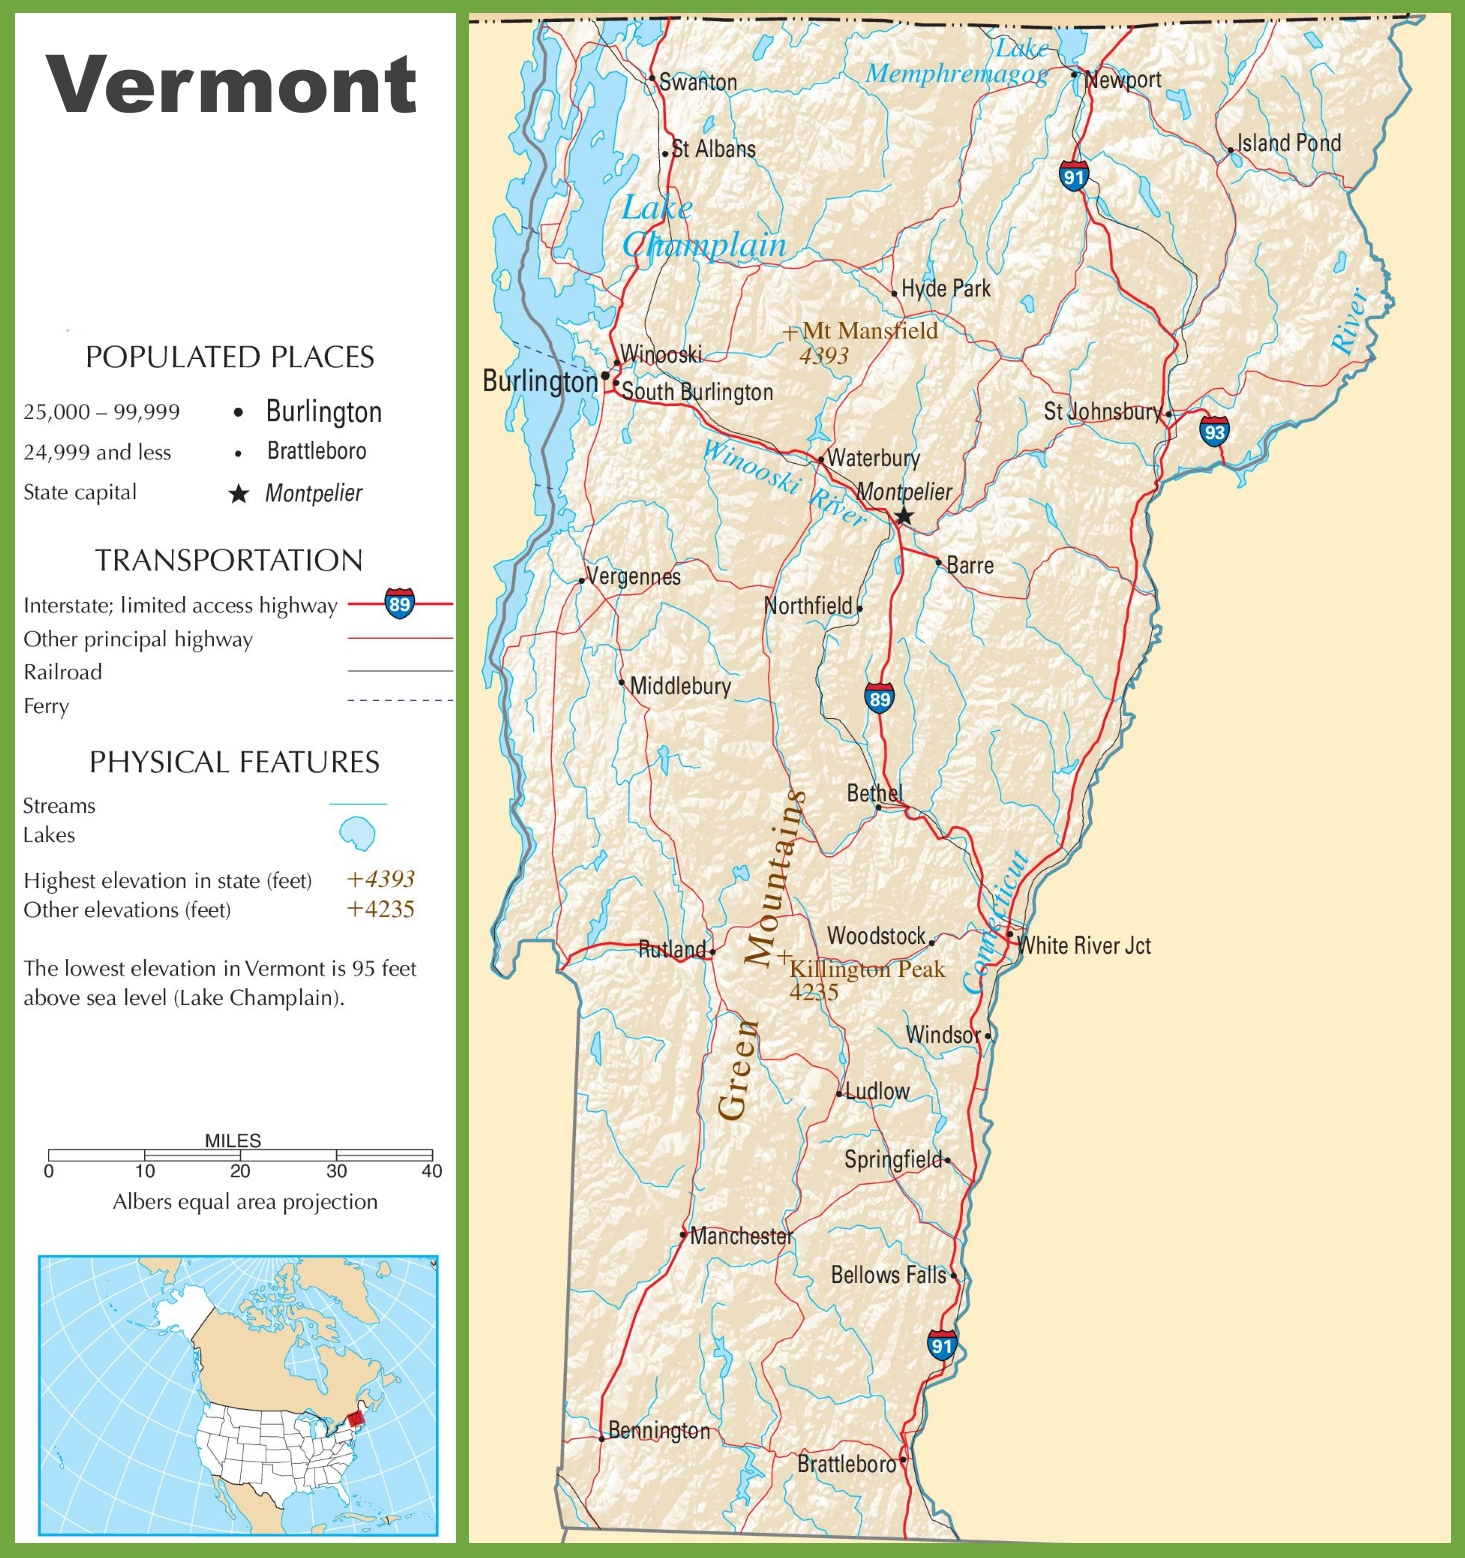 Vermont Highway Map - Vermont in usa map